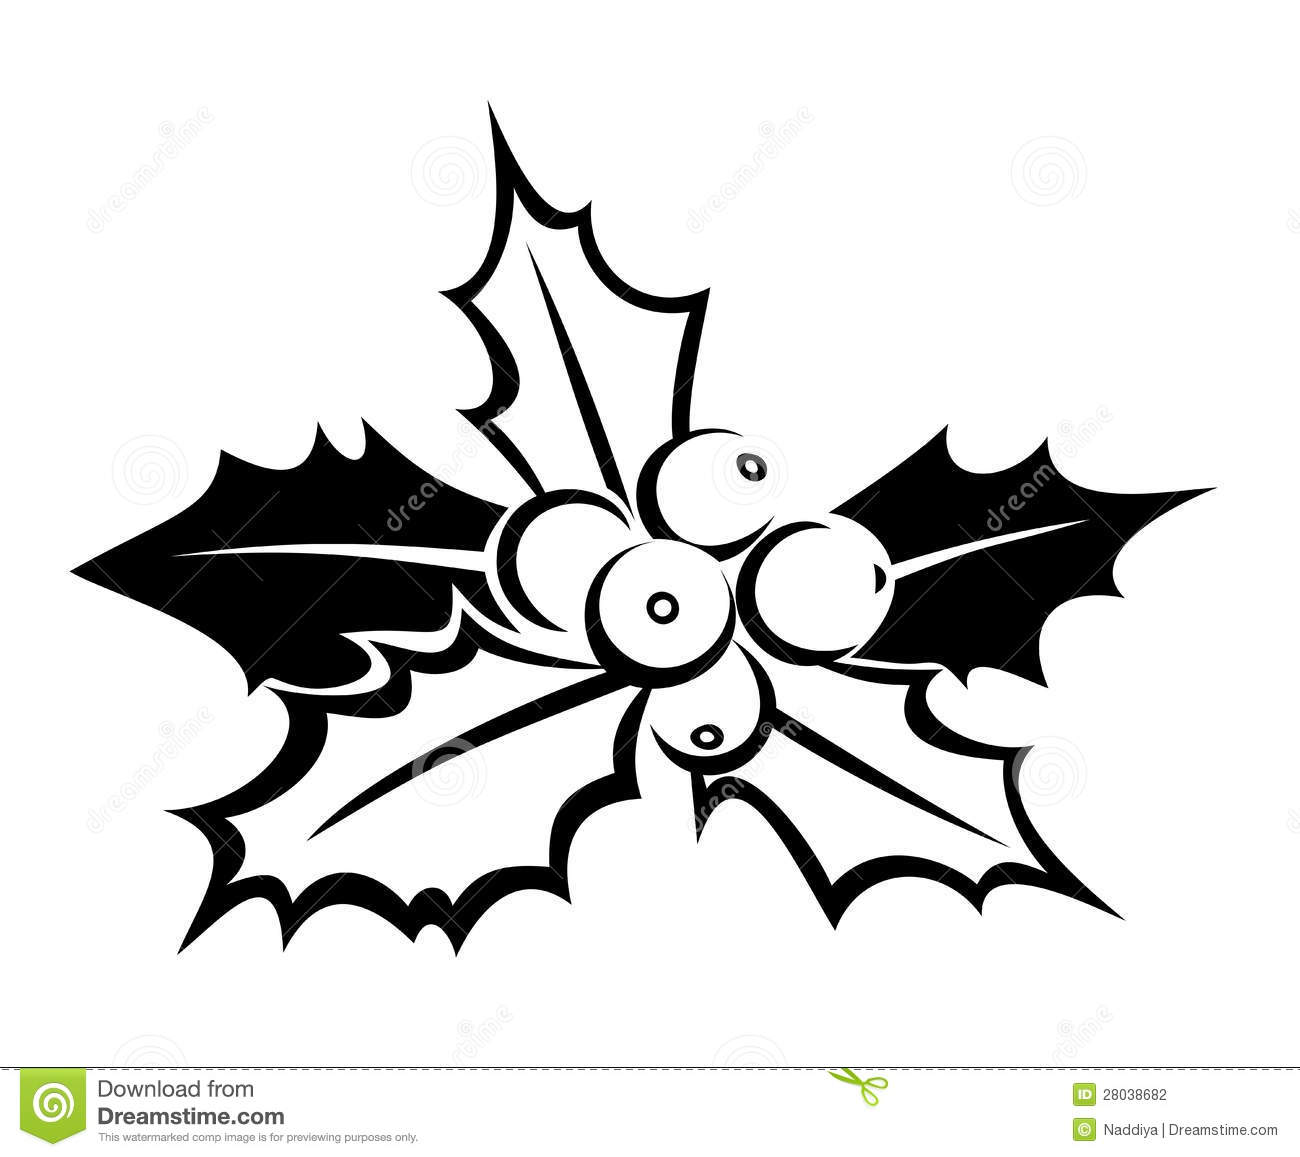 clip art holly leaves black and white - photo #4